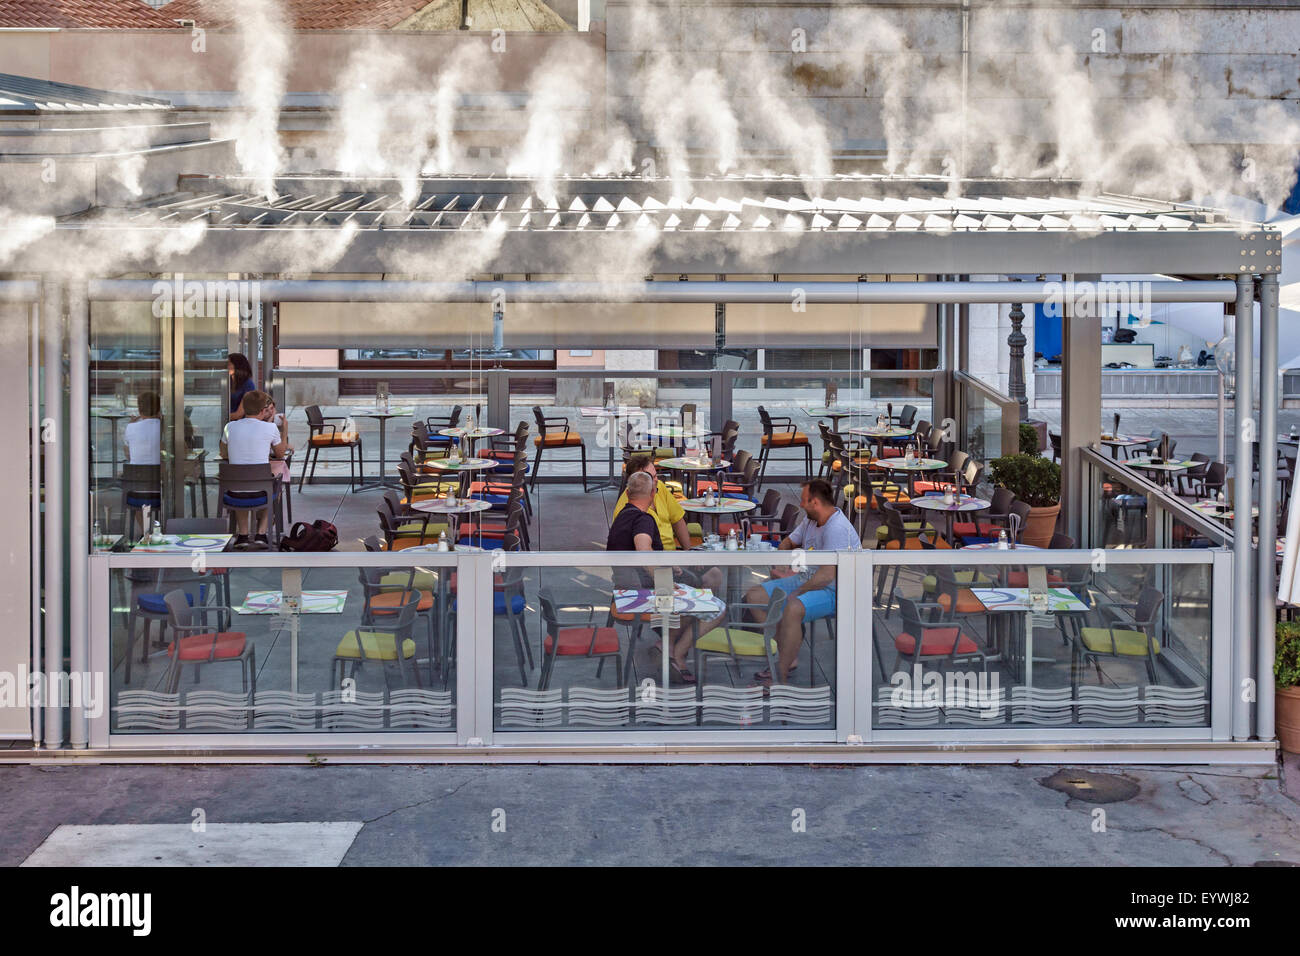 Pula, Croatia. An open-air restaurant using a water mist cooling system in summer - Stock Image